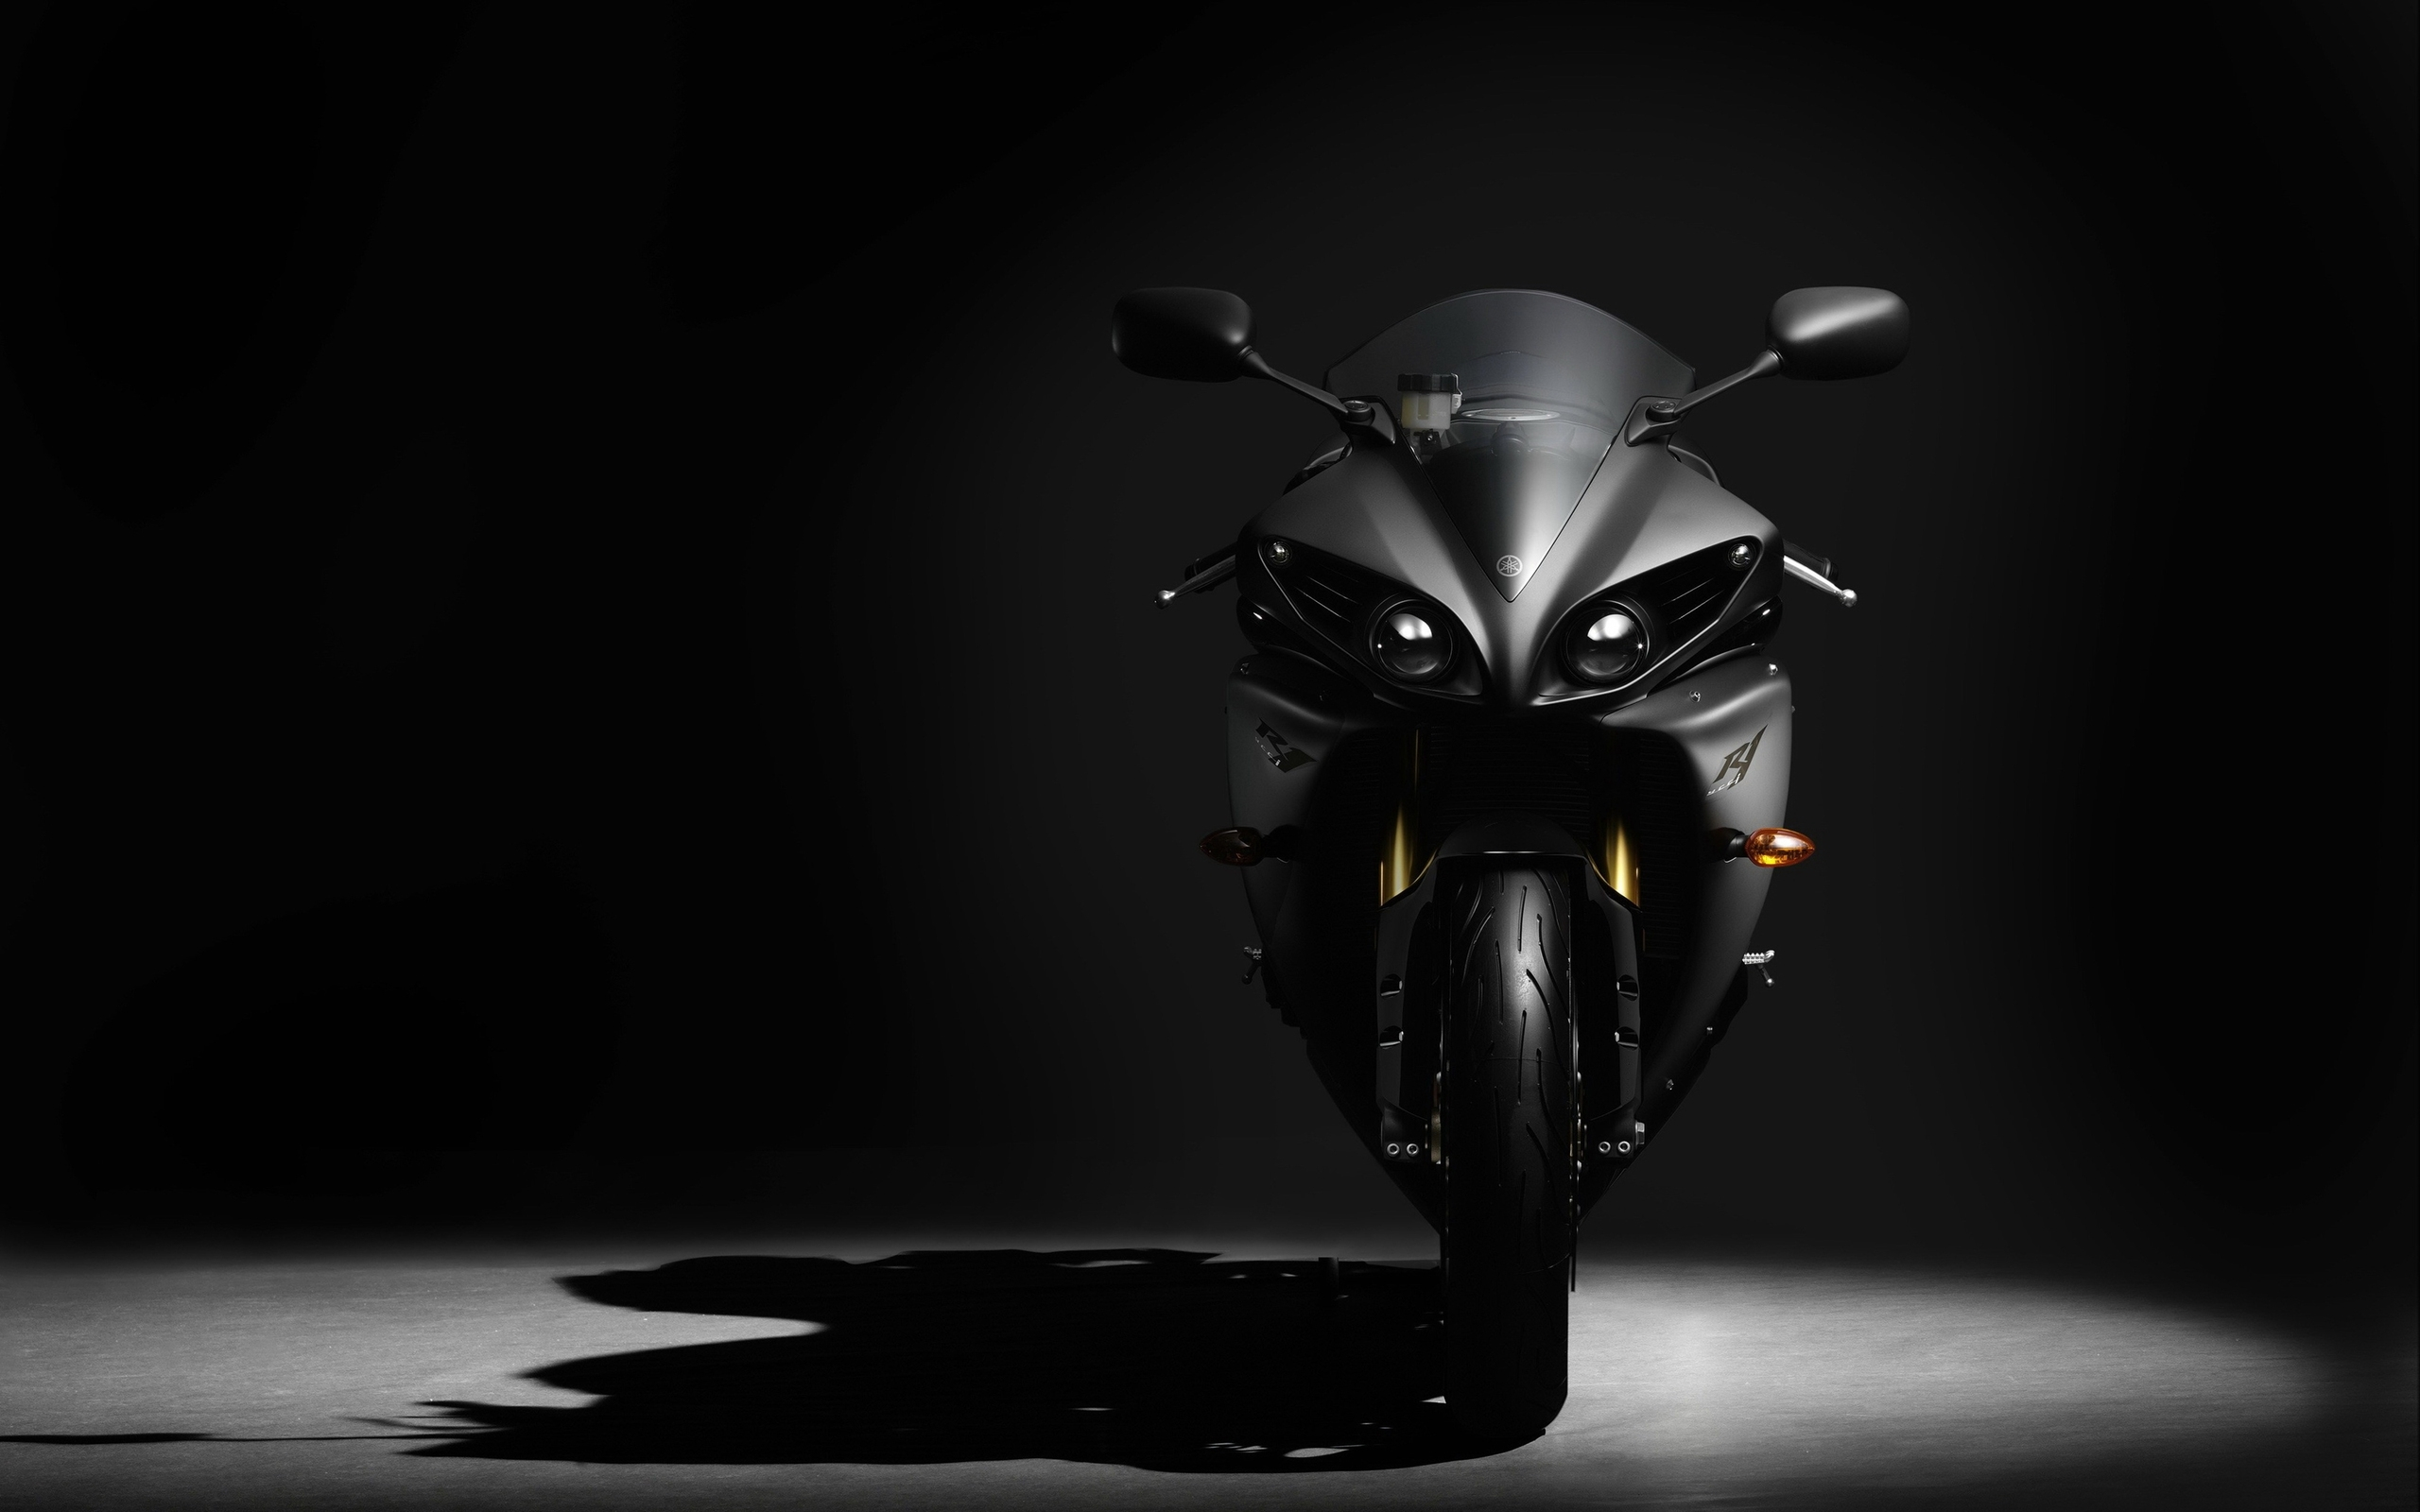 yamaha r high quality wallpapers